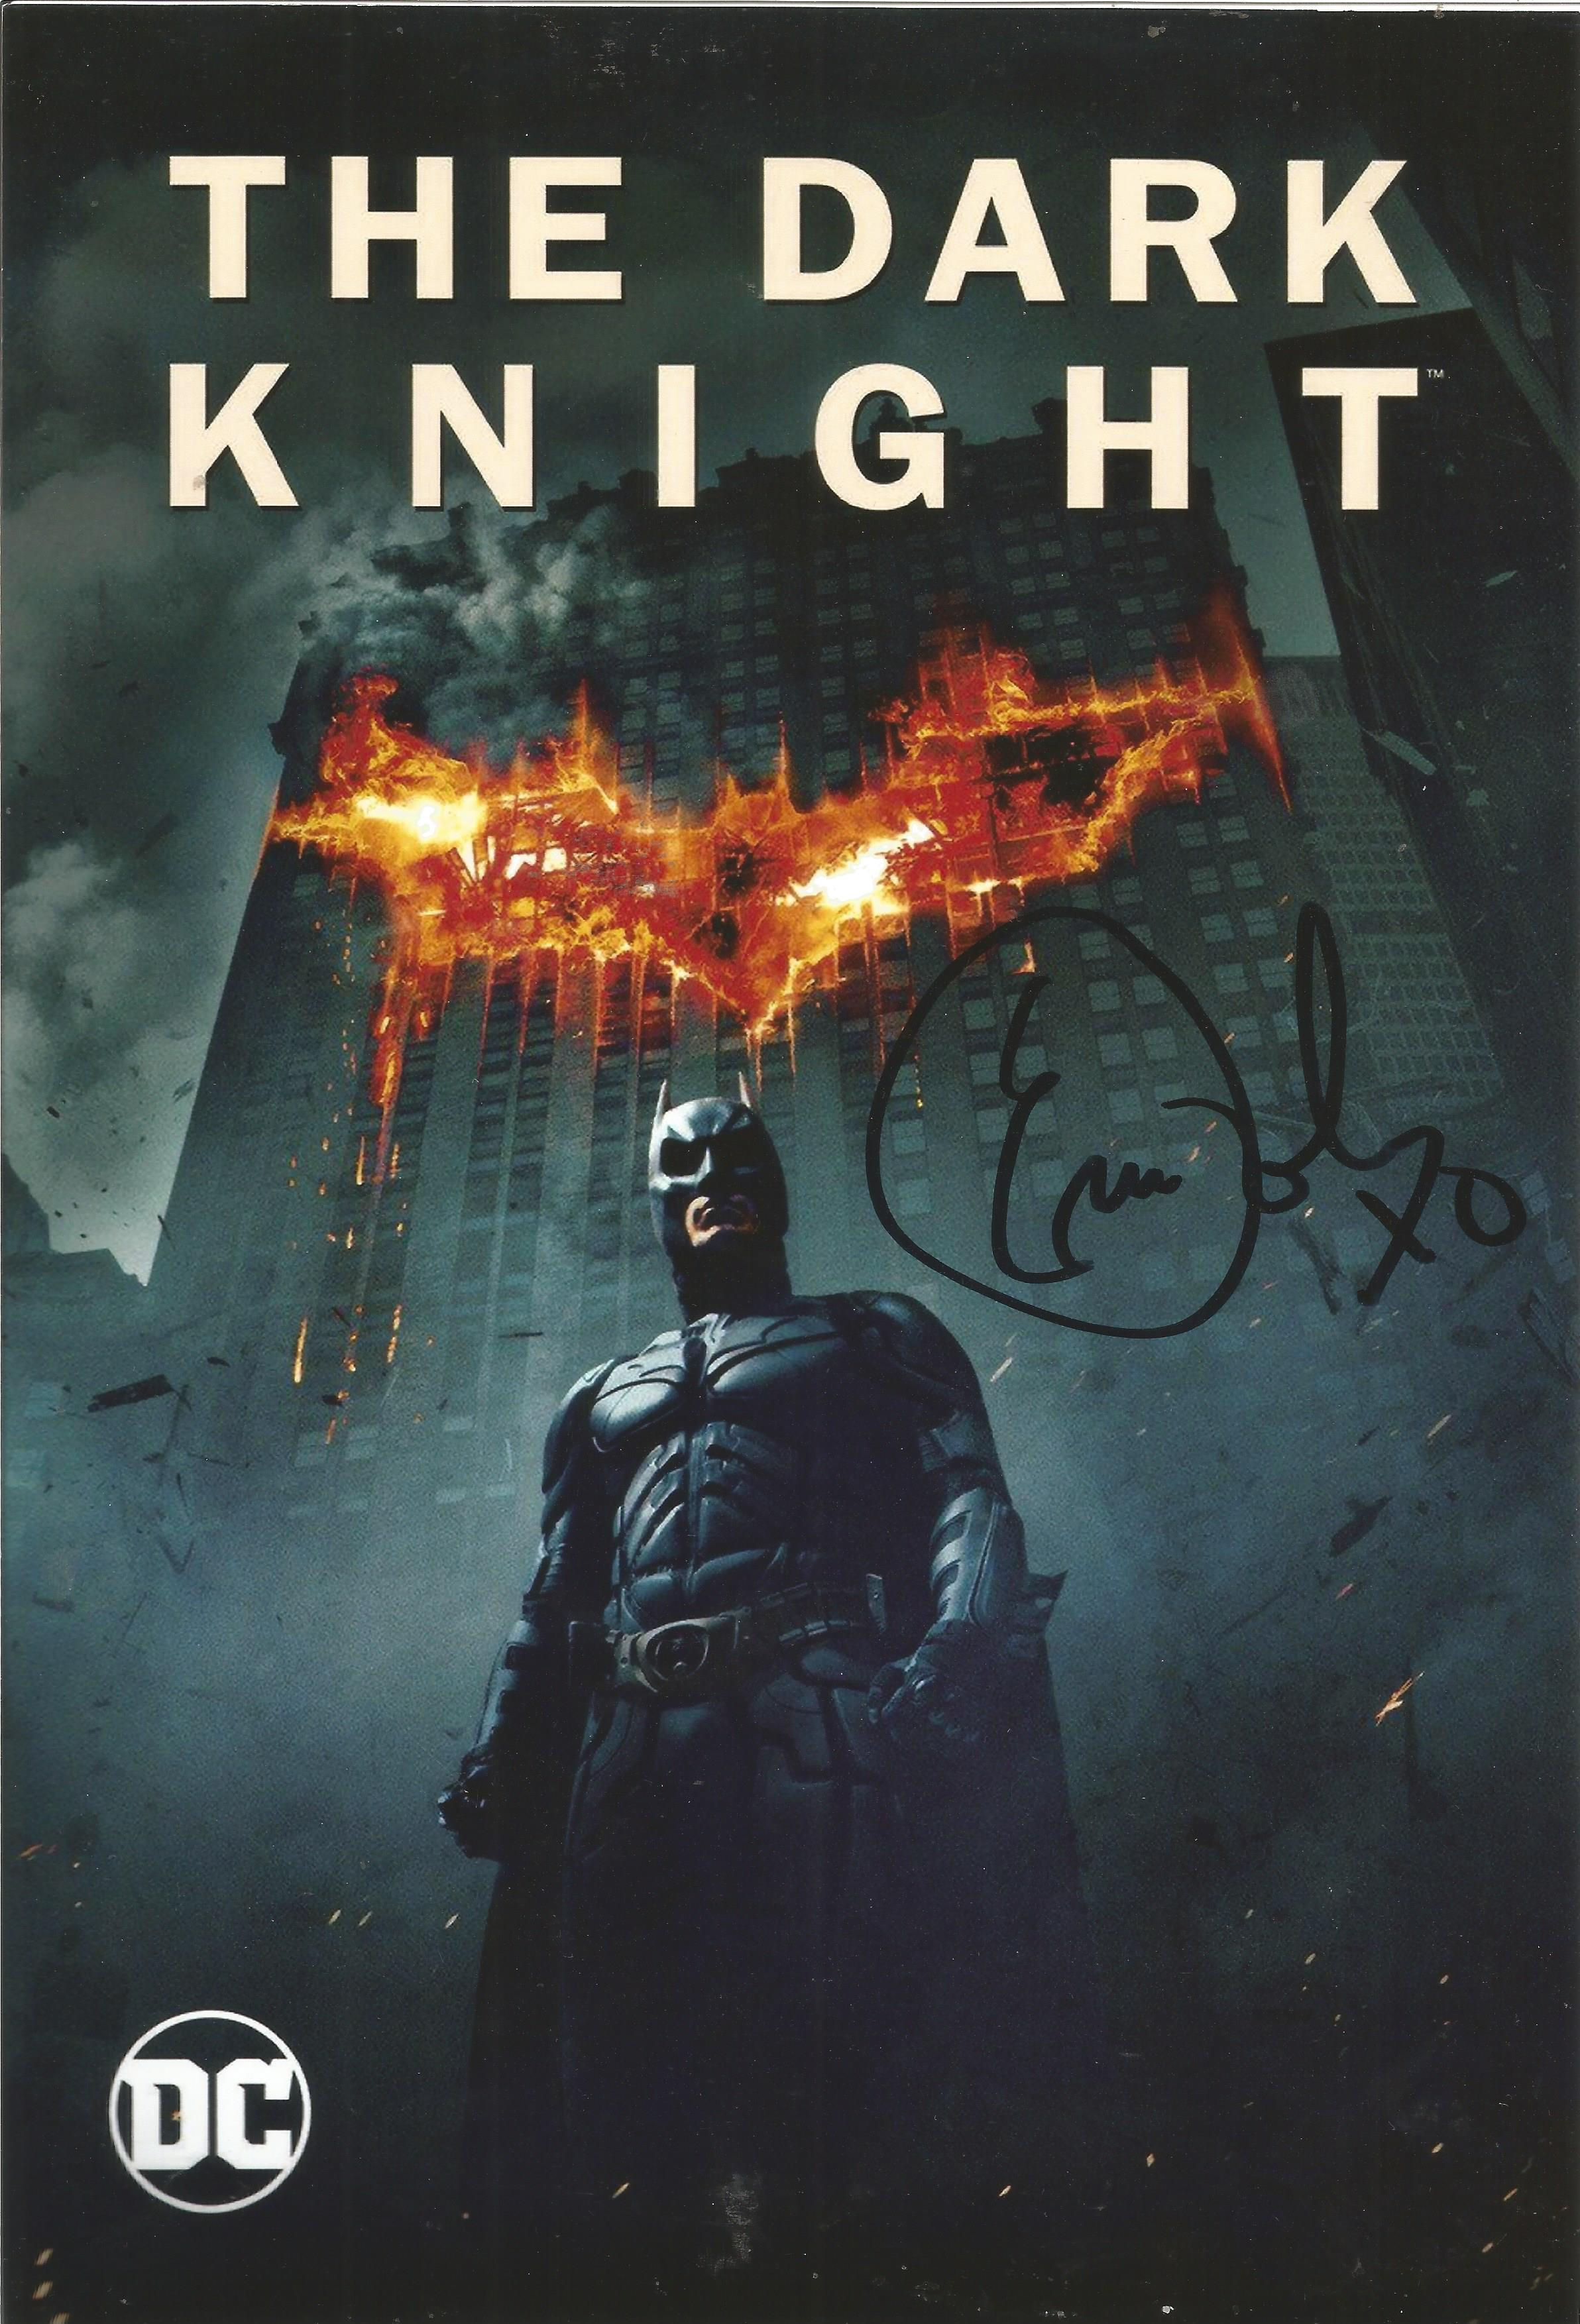 Batman Dark Knight Eric Roberts signed 10x8 colour photo. Good condition. All autographs come with a